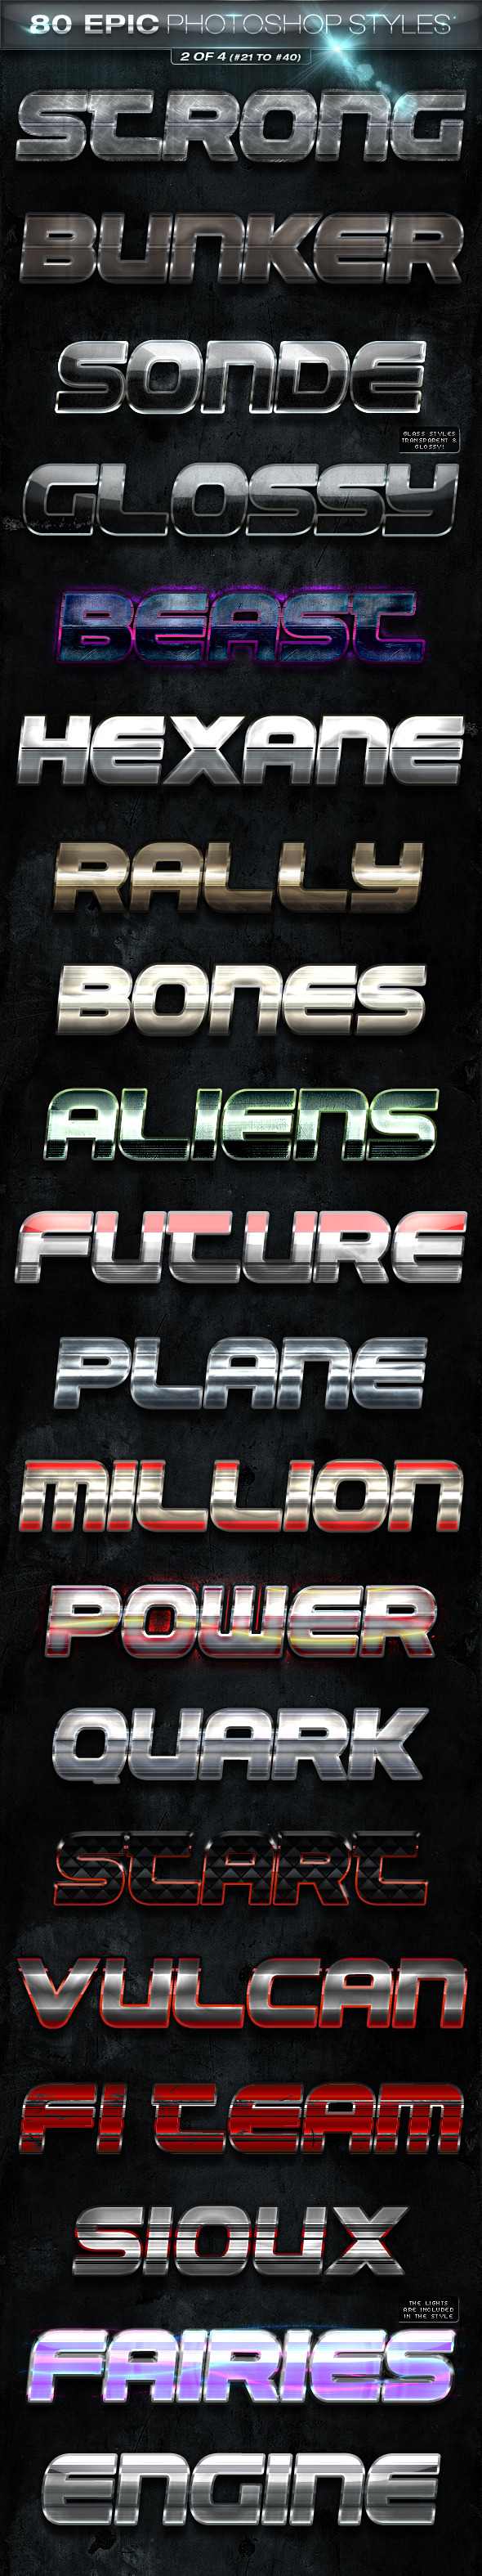 80 EPIC Photoshop Styles 2 of 4 - Text Effects Styles